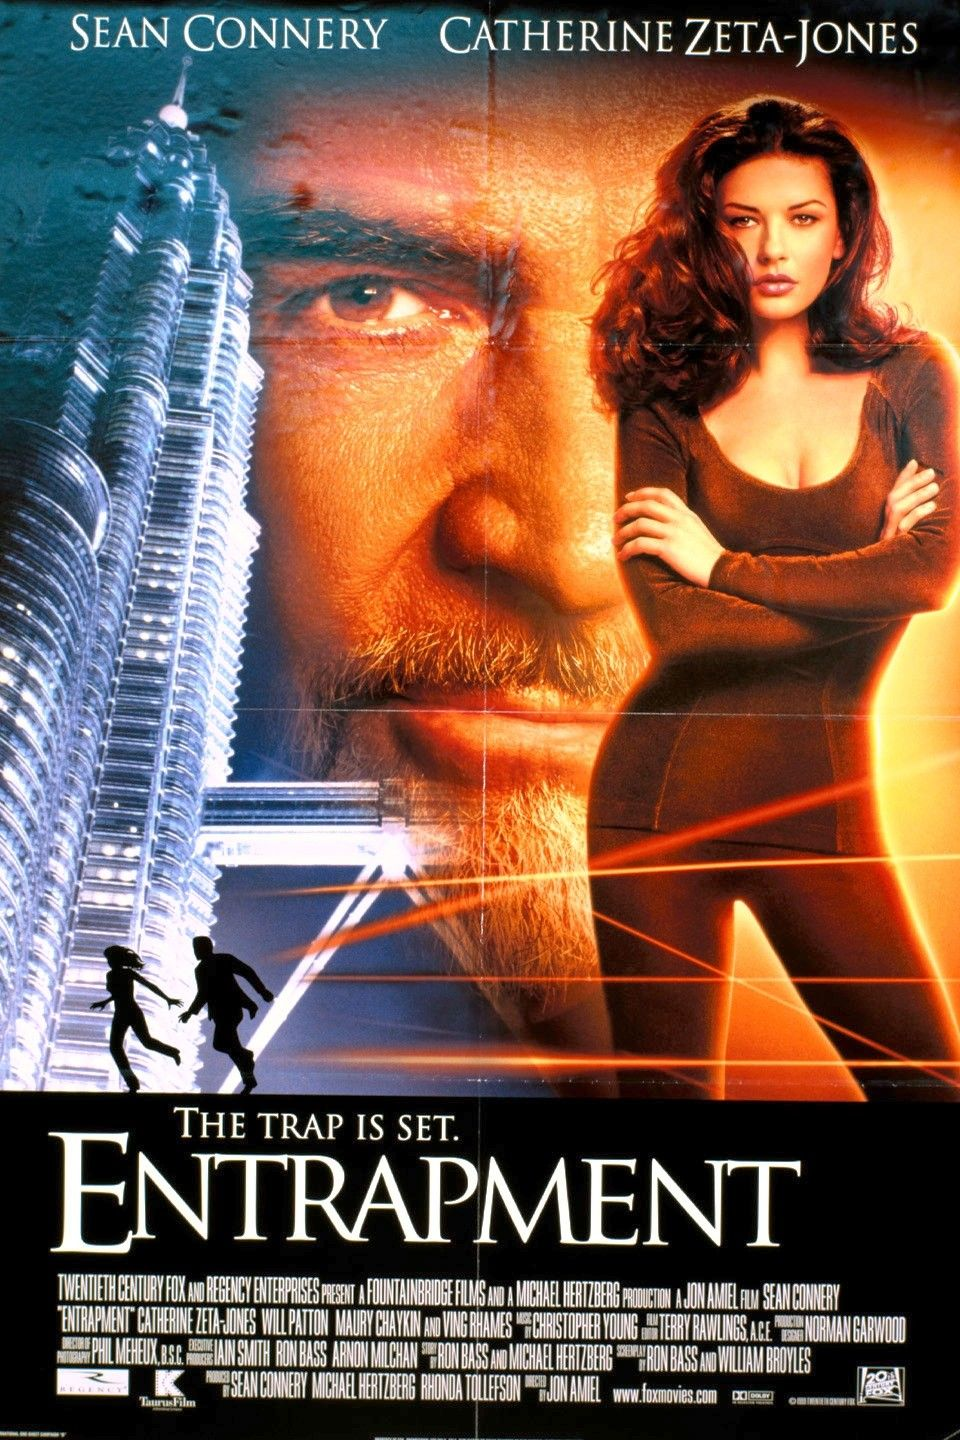 Entrapment (1999) Best movie posters, Film posters